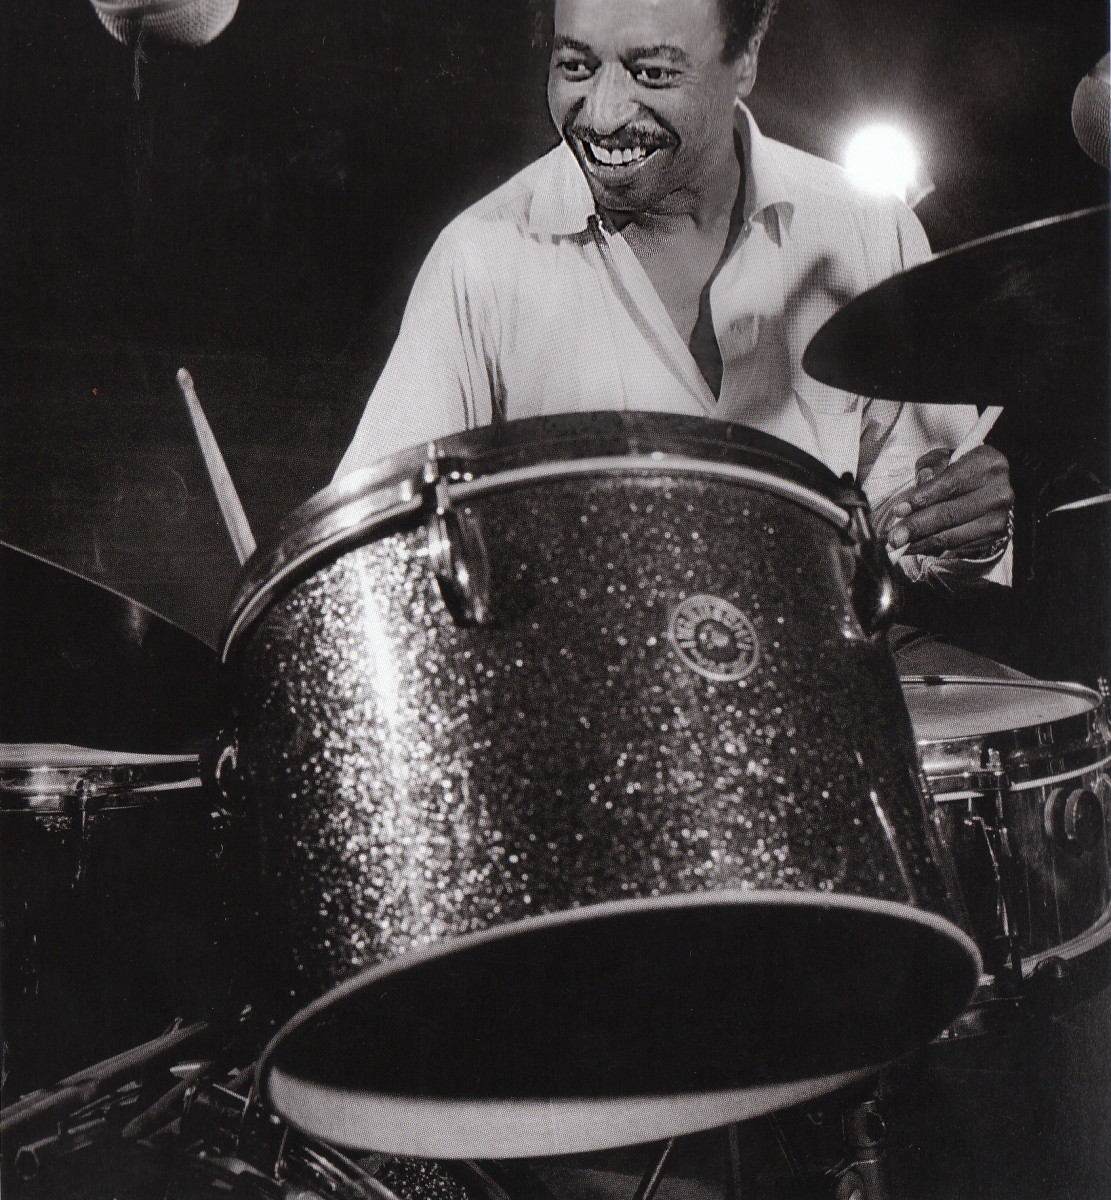 Chico Hamilton at a Rudy Van Gelder's studio recording session for Impulse!, New York City, 1963.